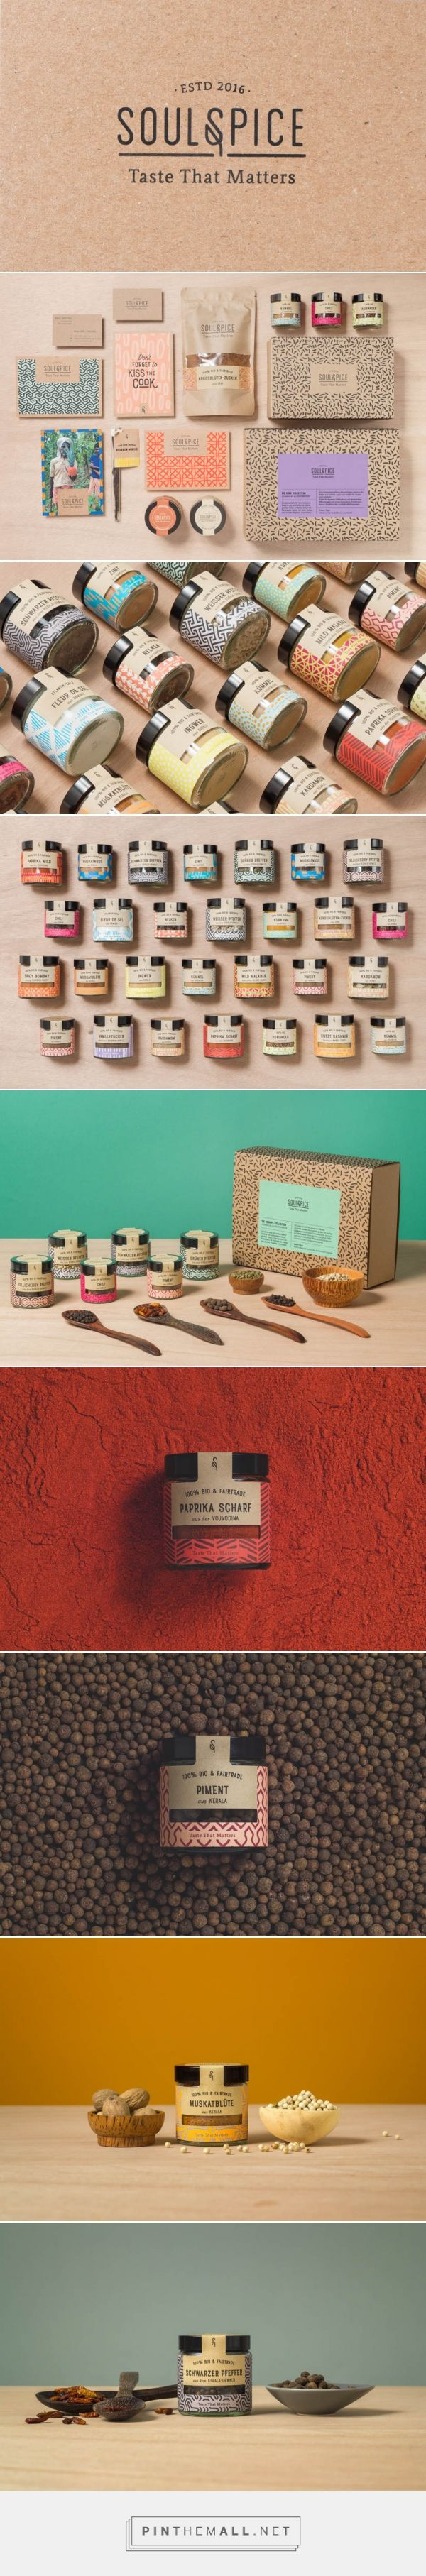 Fivestar Branding Agency Business Branding And Web Design For Small Business Owners Graphic Design Packaging Packaging Design Packaging Design Inspiration